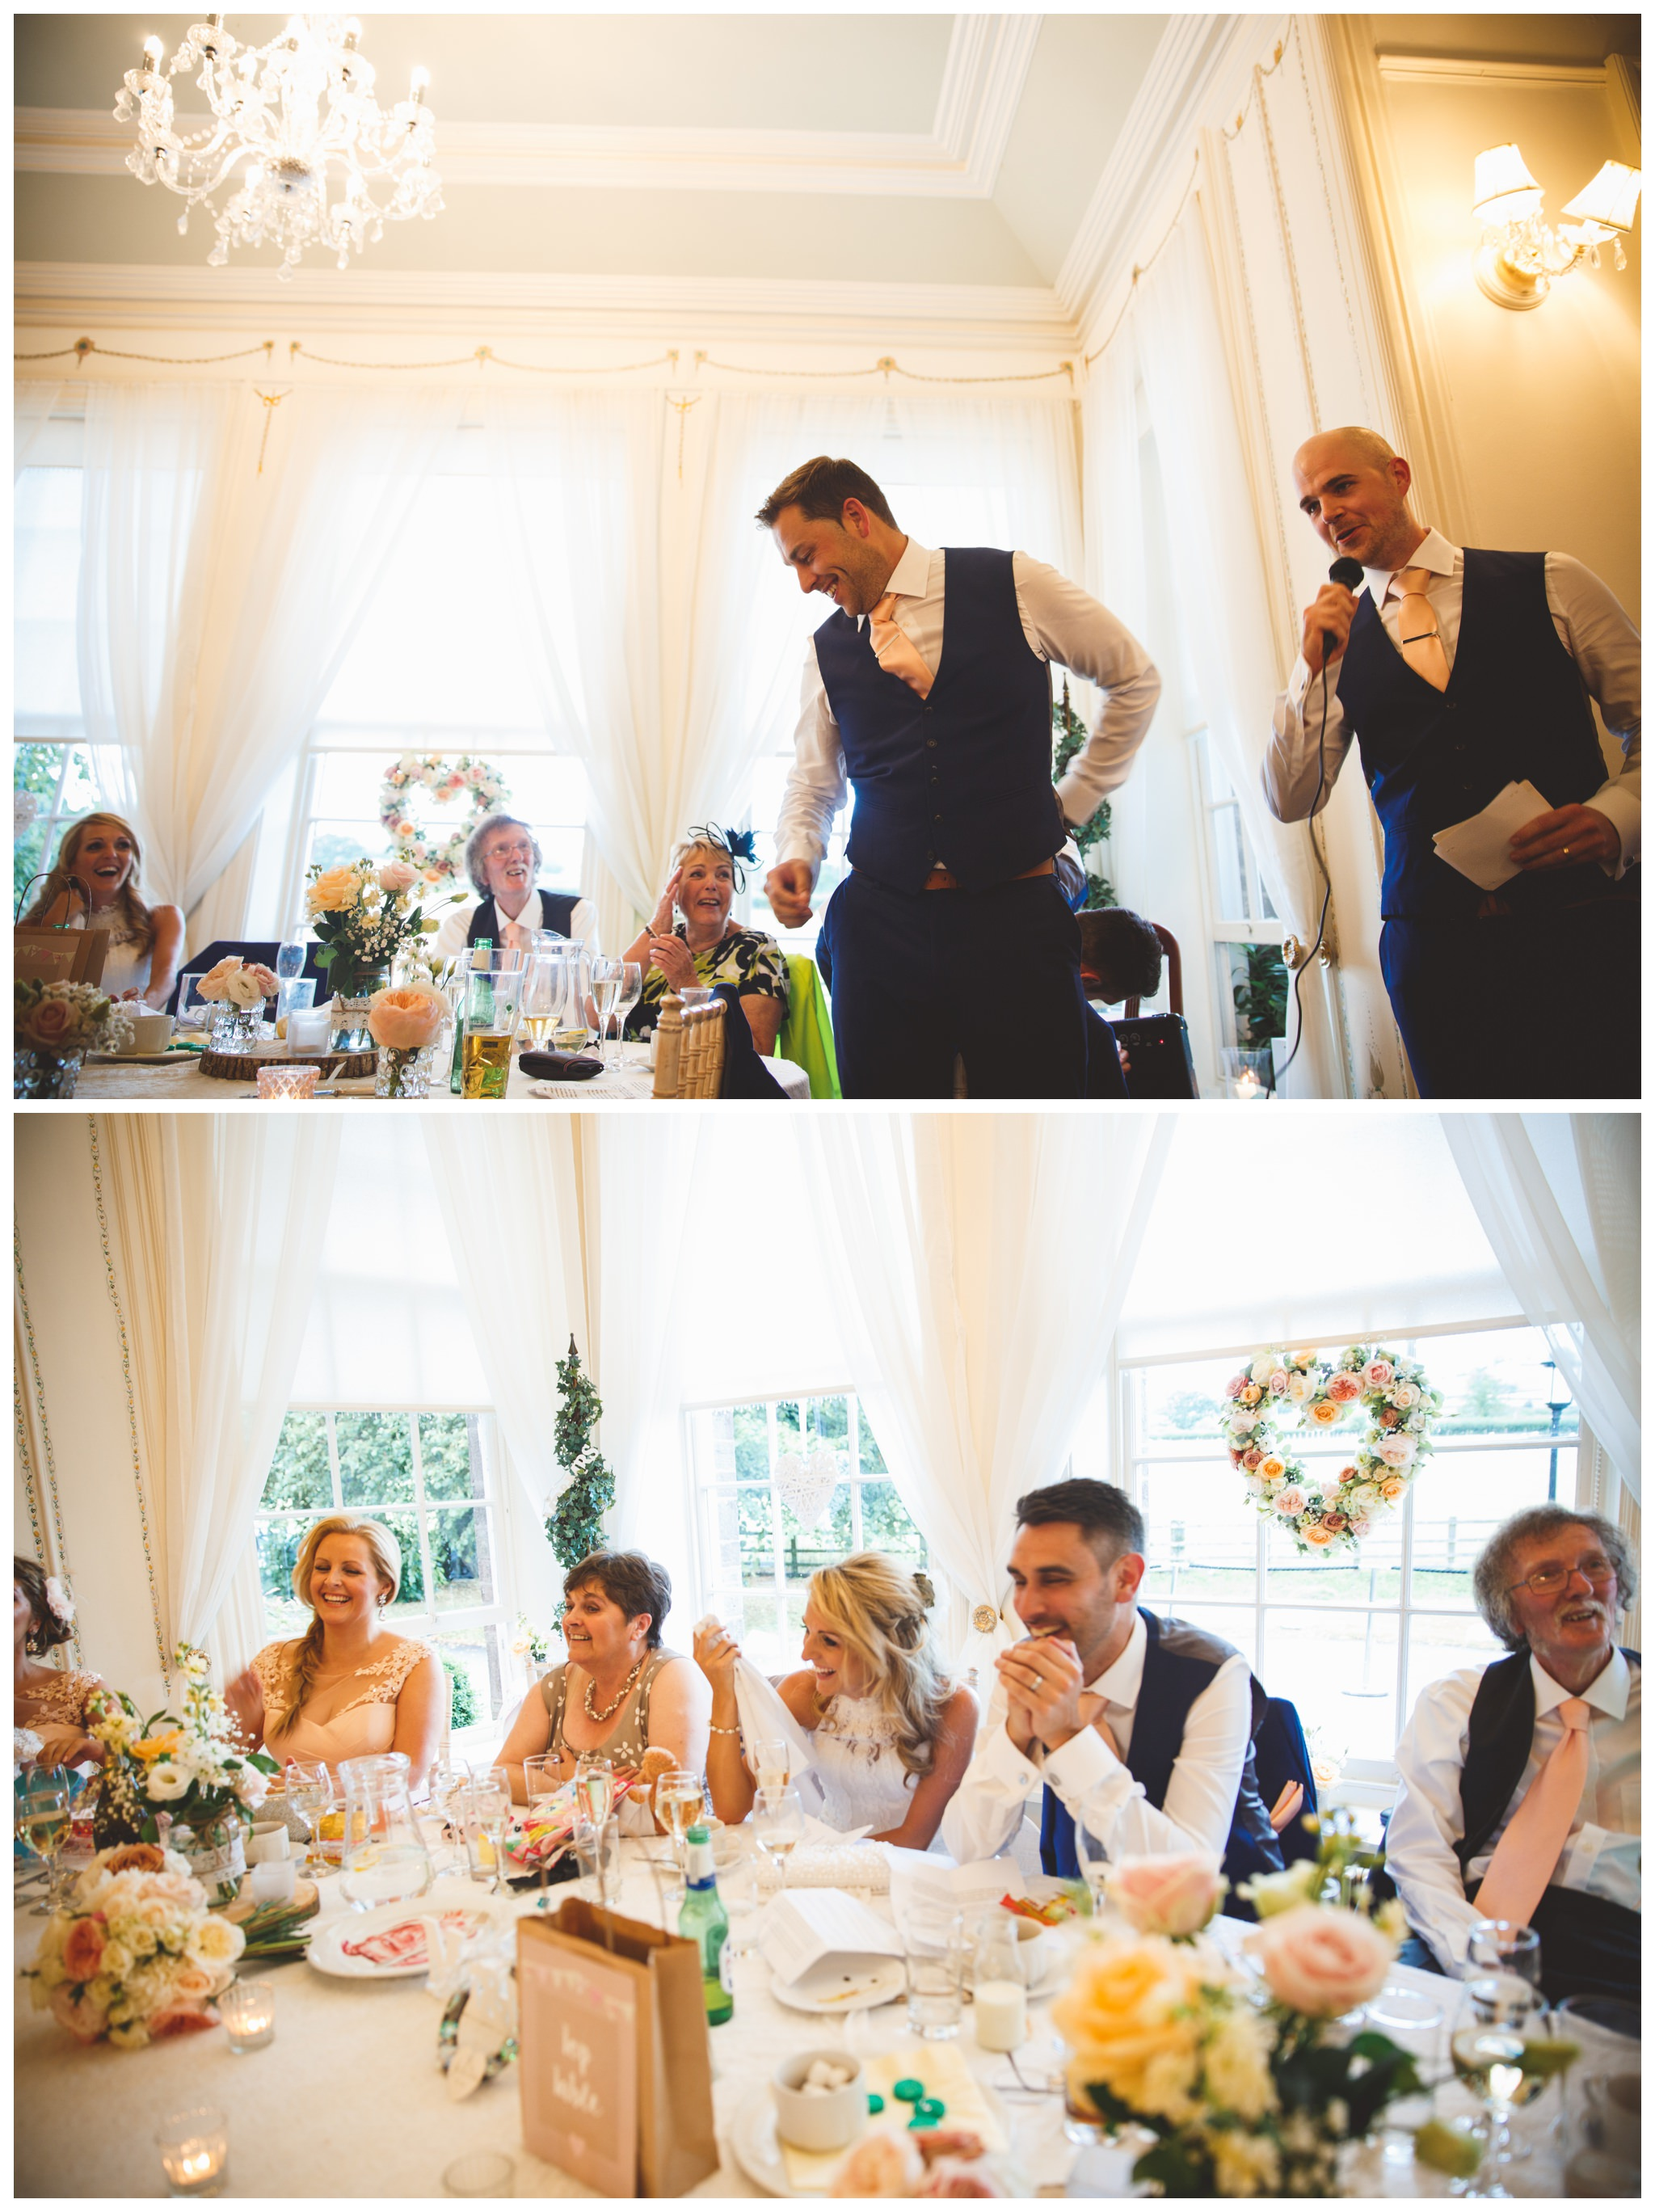 Richard Savage Photography - Wedding - Peterstone Court Brecon - 2016-05-11_0056